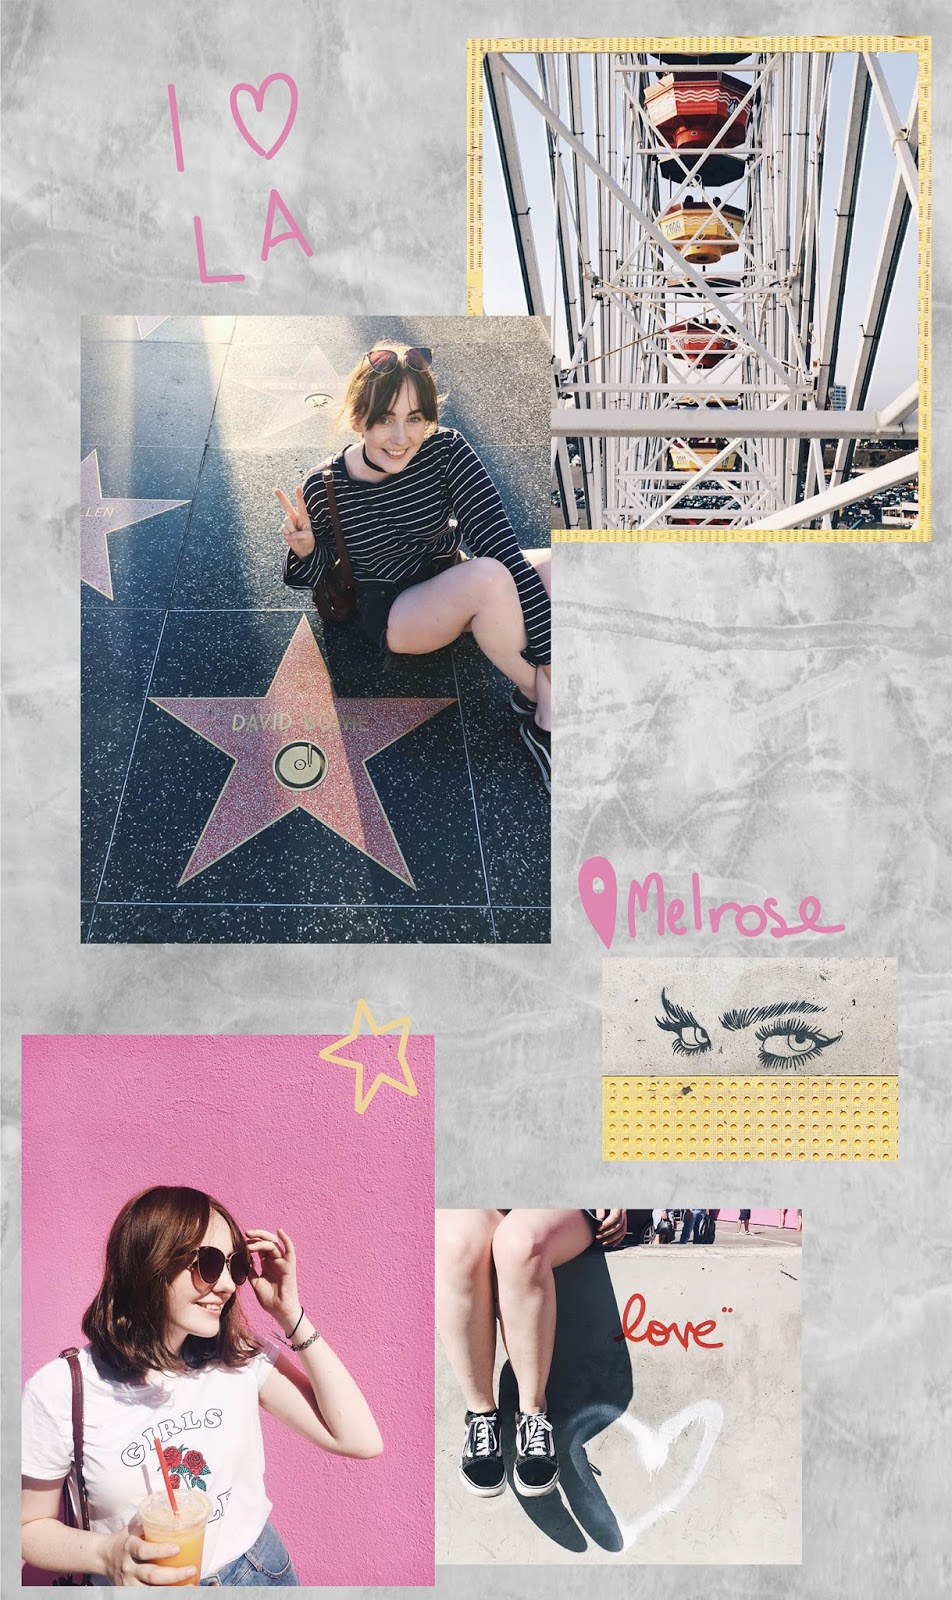 first impressions of Los Angeles by travel blogger Allie Davies, ft. Santa Monica Ferris wheel, David bowie walk of fame, LA street art, Paul smith pink wall on melrose